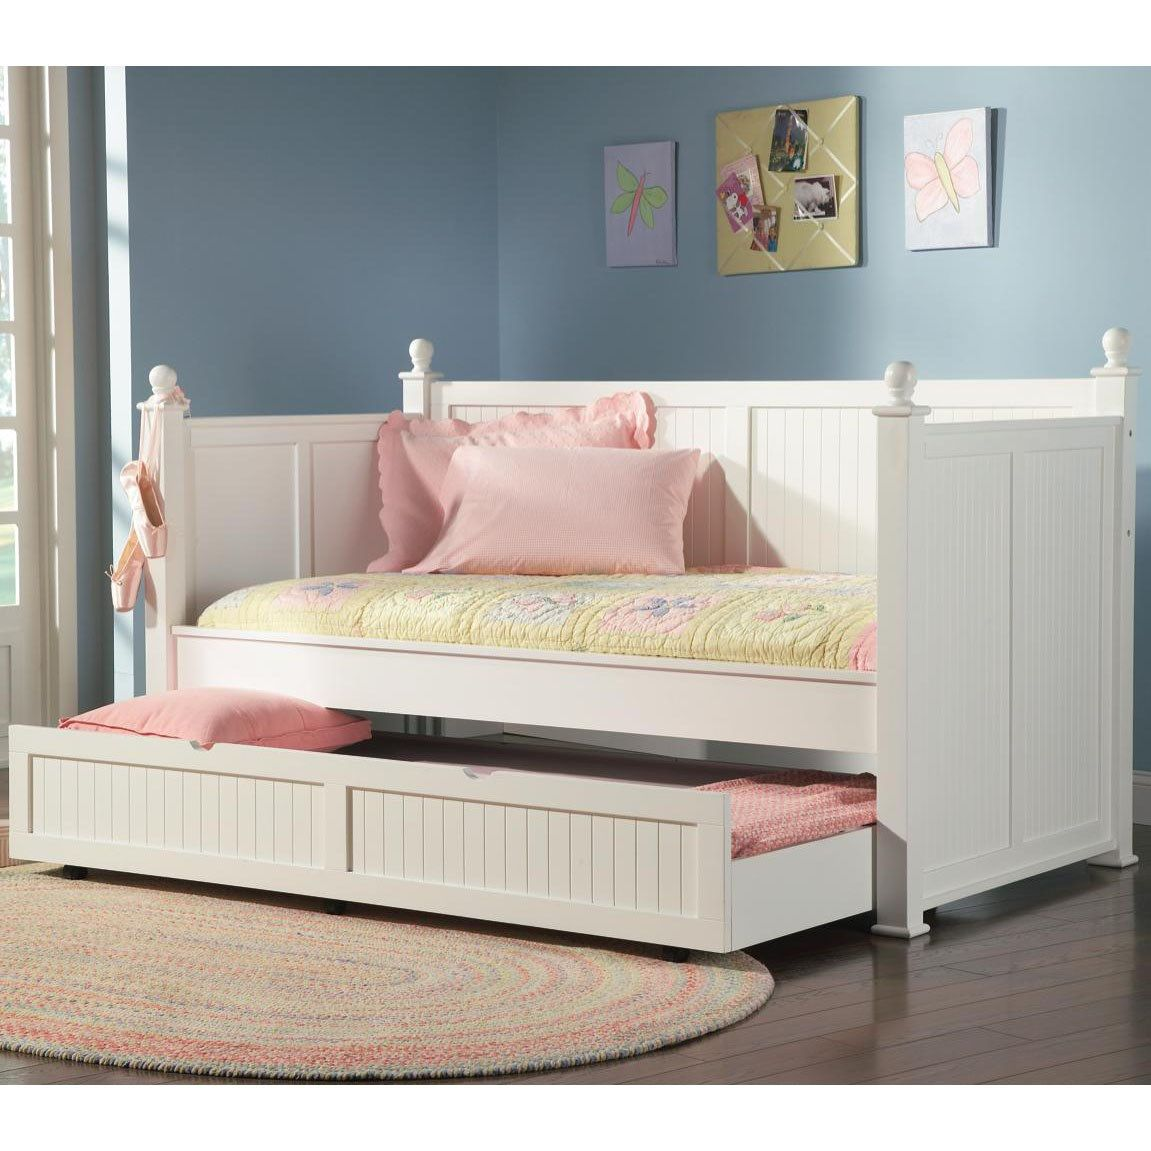 Coaster Furniture 300026 Classic Twin Daybed with Trundle